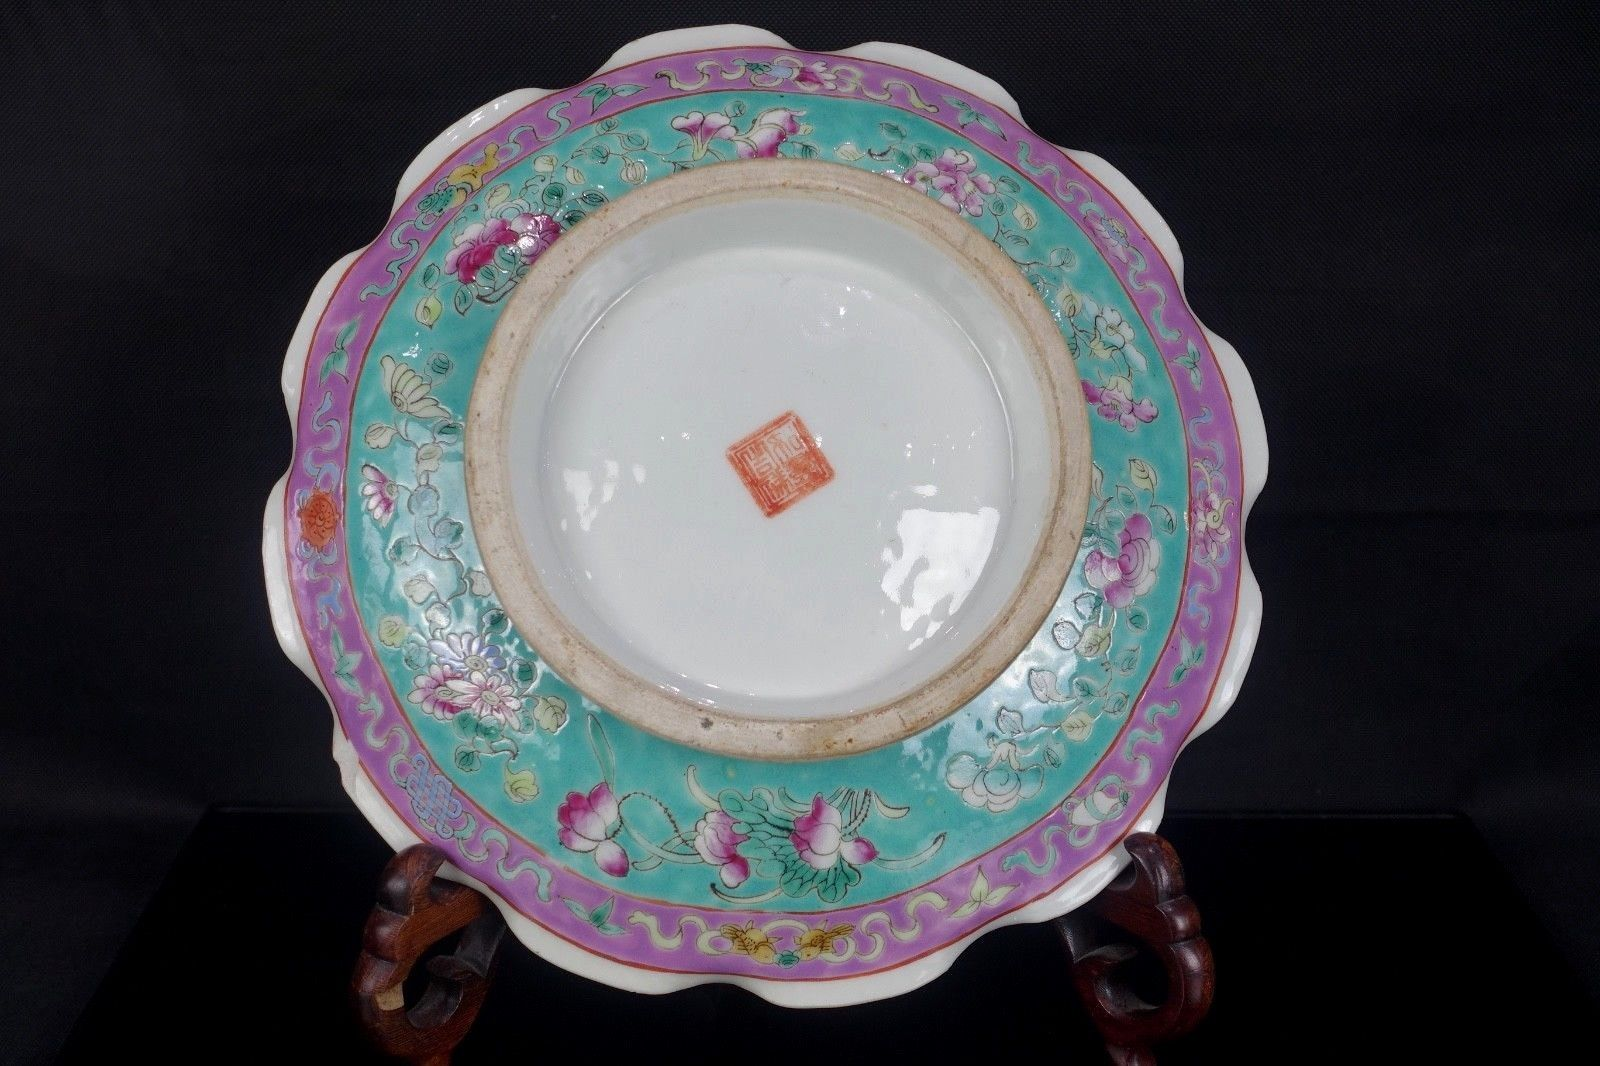 Rare Large 19th Chinese South East Asian Nyonya Peranakan Straits Footed Bowl Antique Chinese